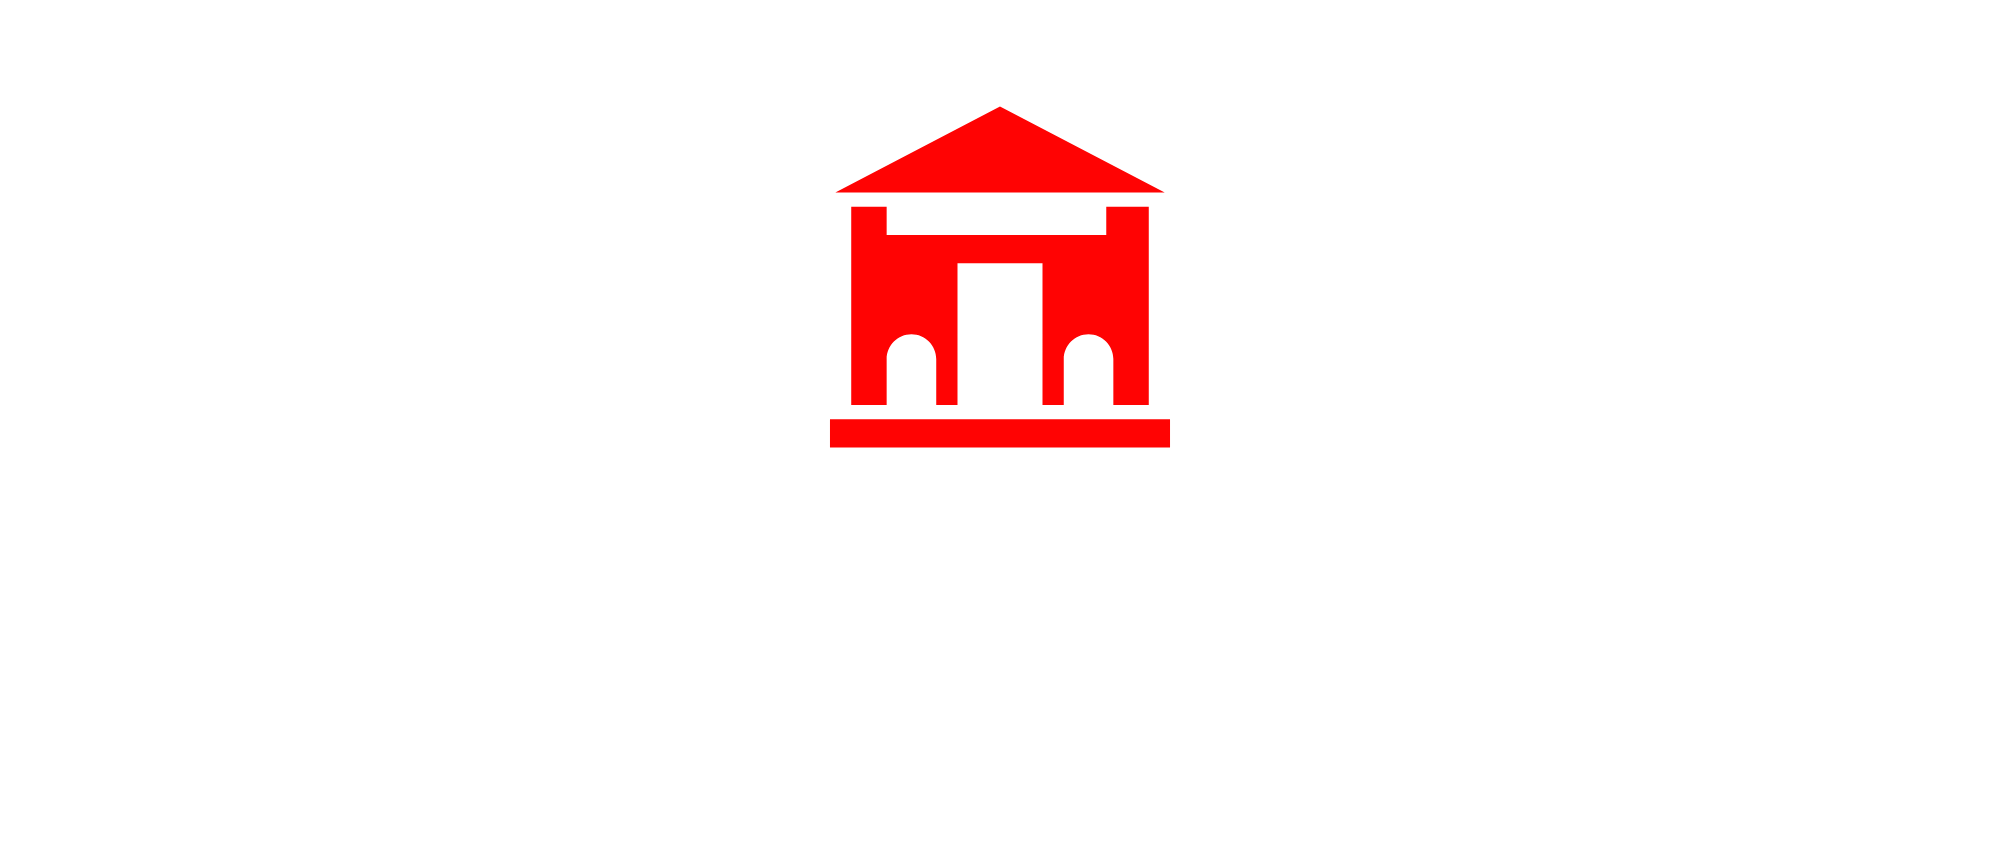 A12 GROUP-logo (4).png